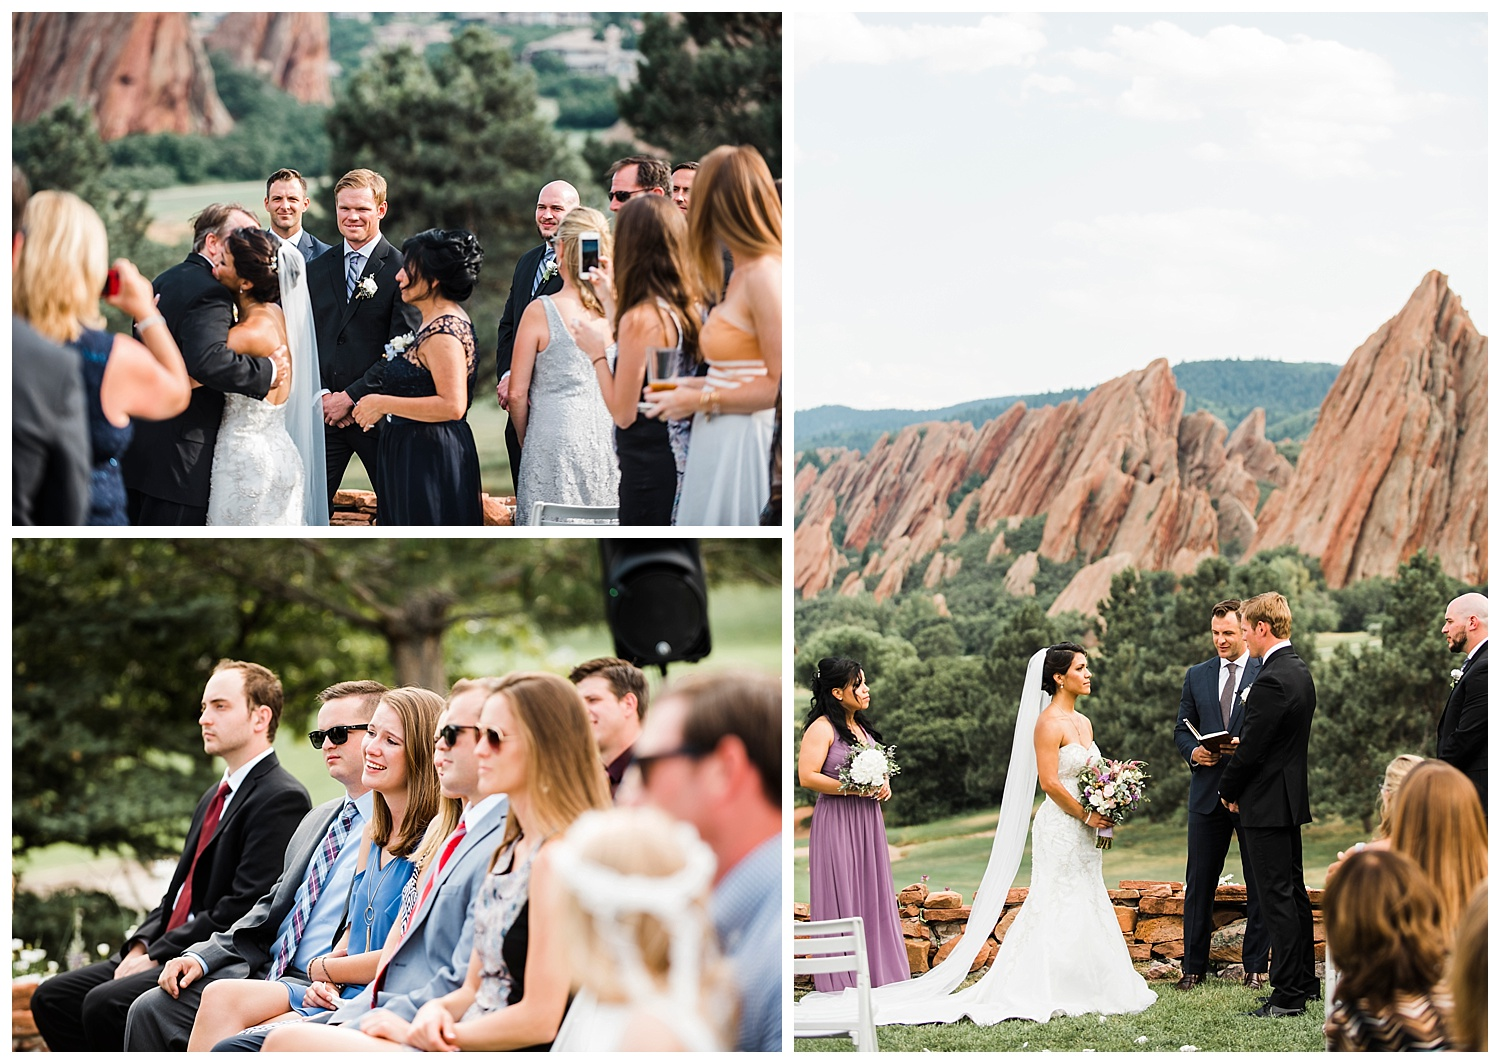 Arrowhead_Golf_Course_Wedding_Littleton_Colorado_Apollo_Fields_158.jpg